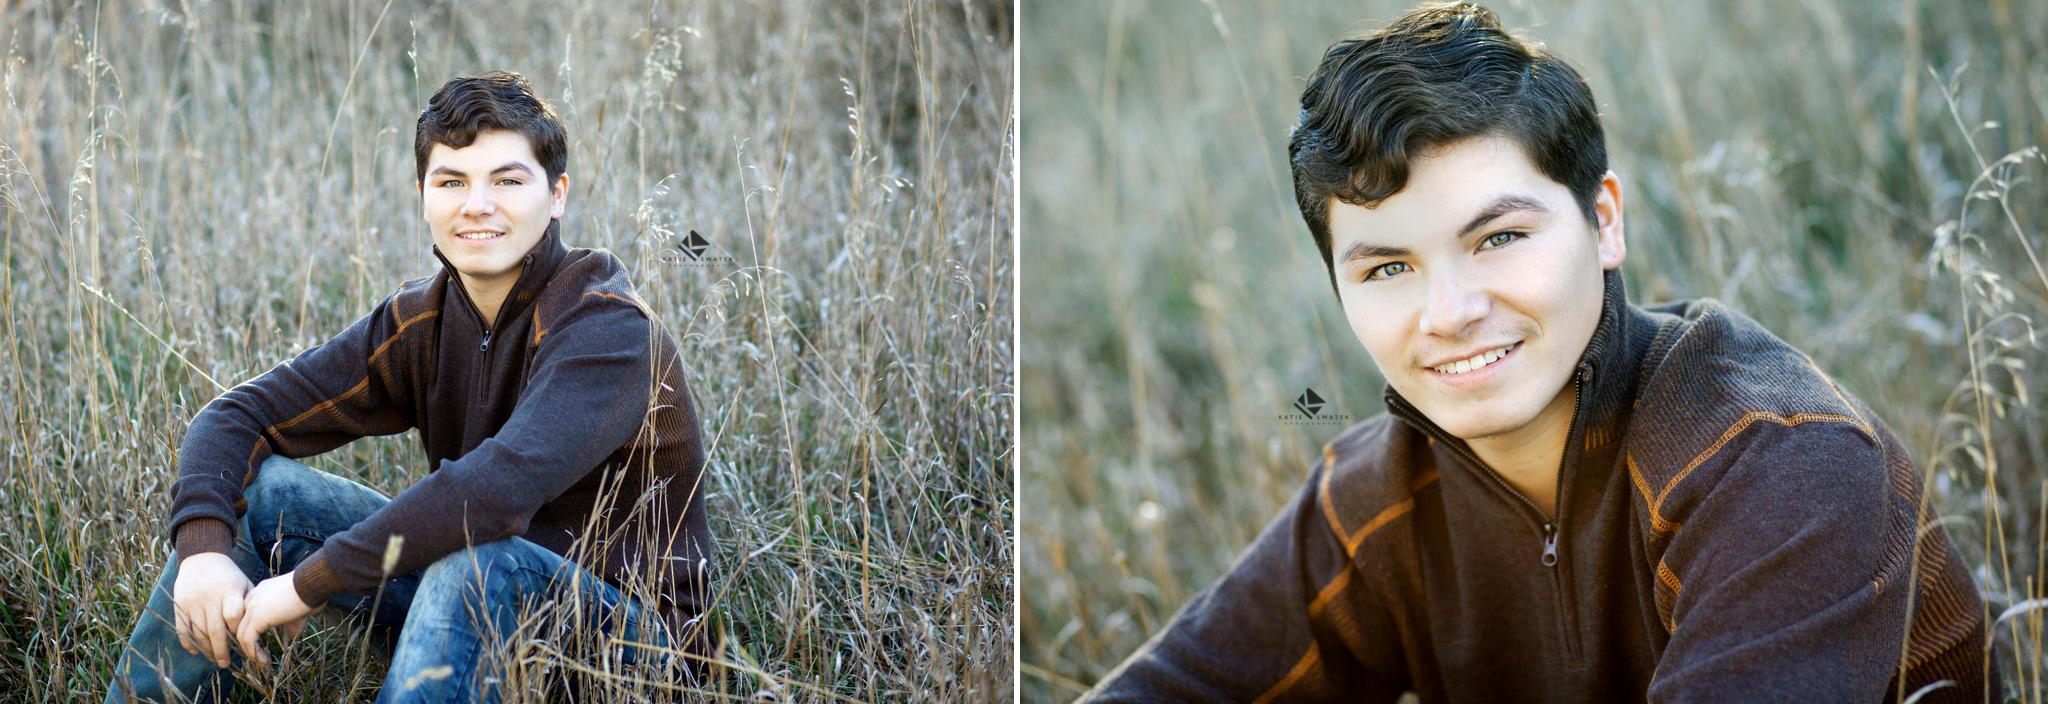 black haired senior guy in a brown sweater sitting in tall brome grass